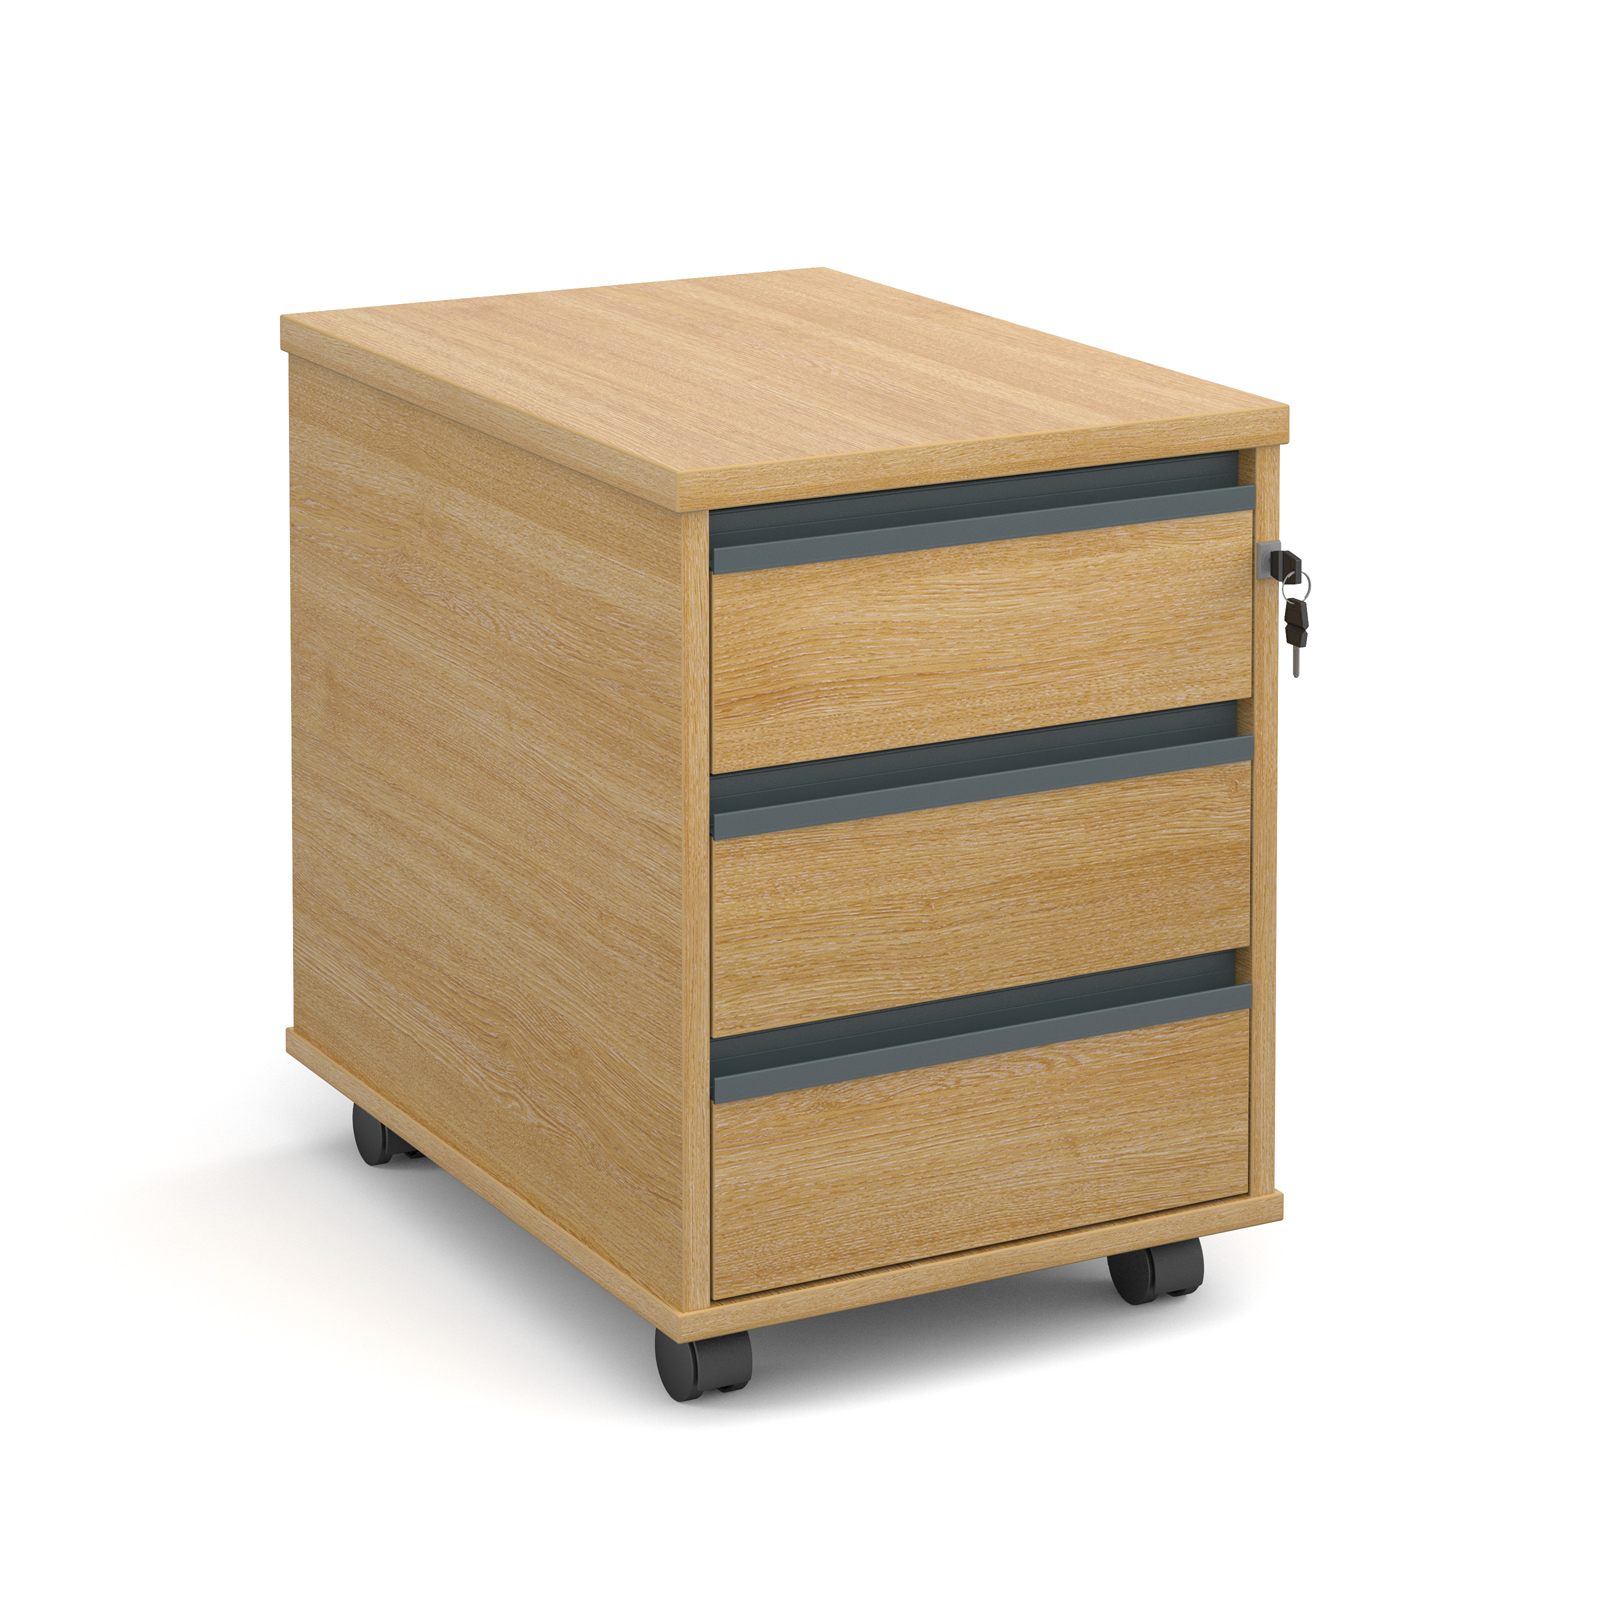 Mobile 3 drawer pedestal with graphite finger pull handles 600mm deep - oak